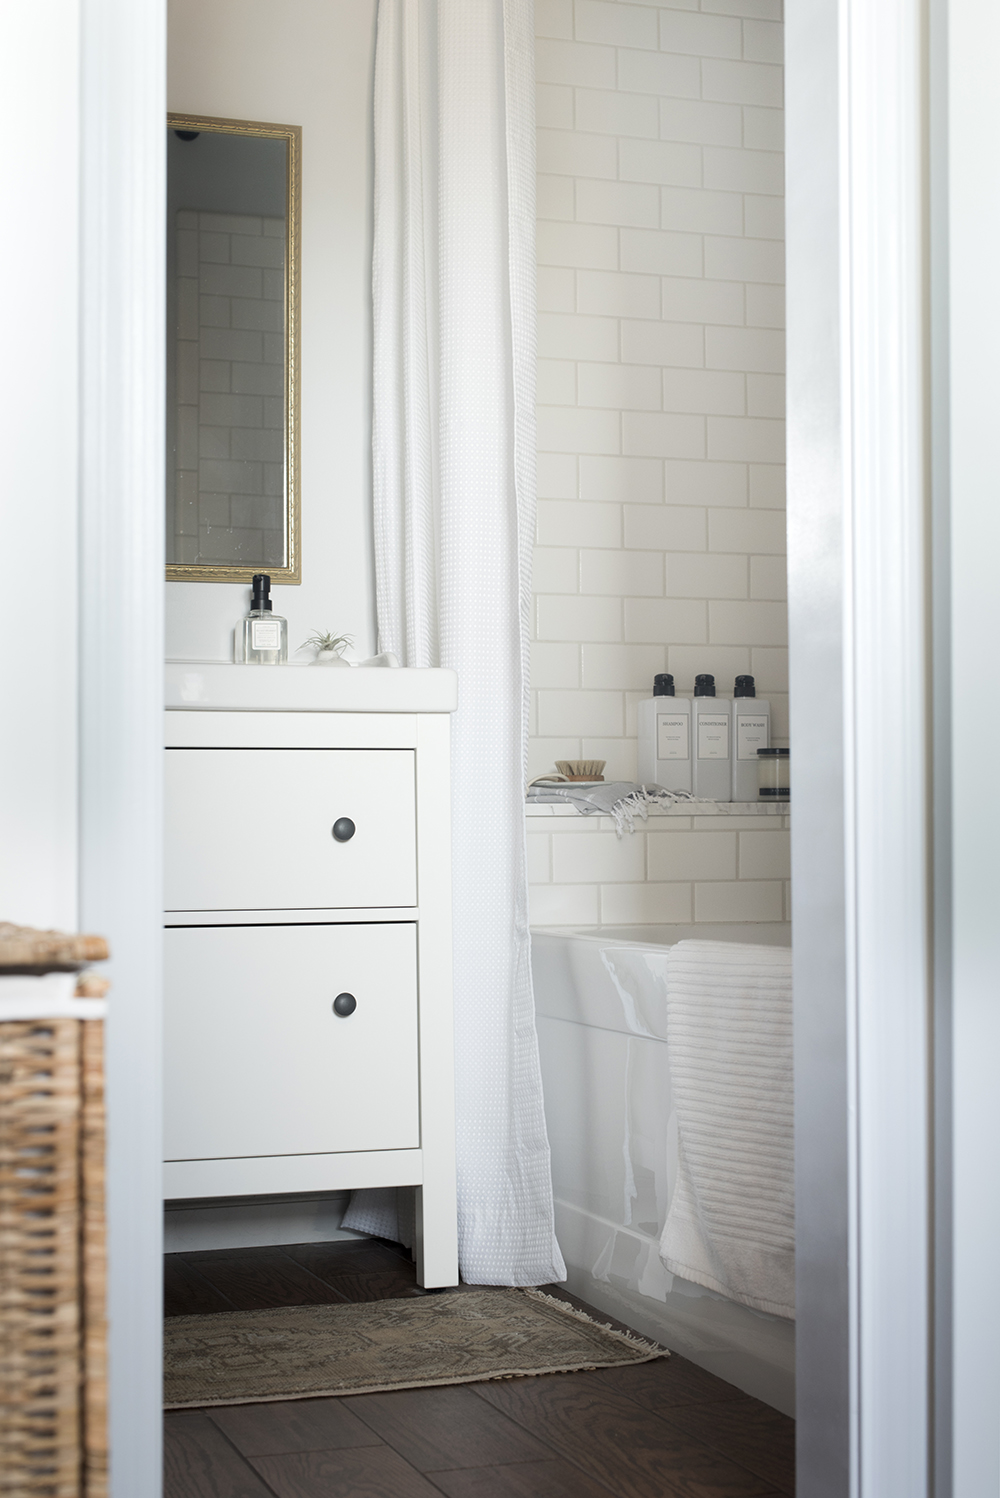 Laurie Anne's Bathroom Makeover - roomfortuesday.com